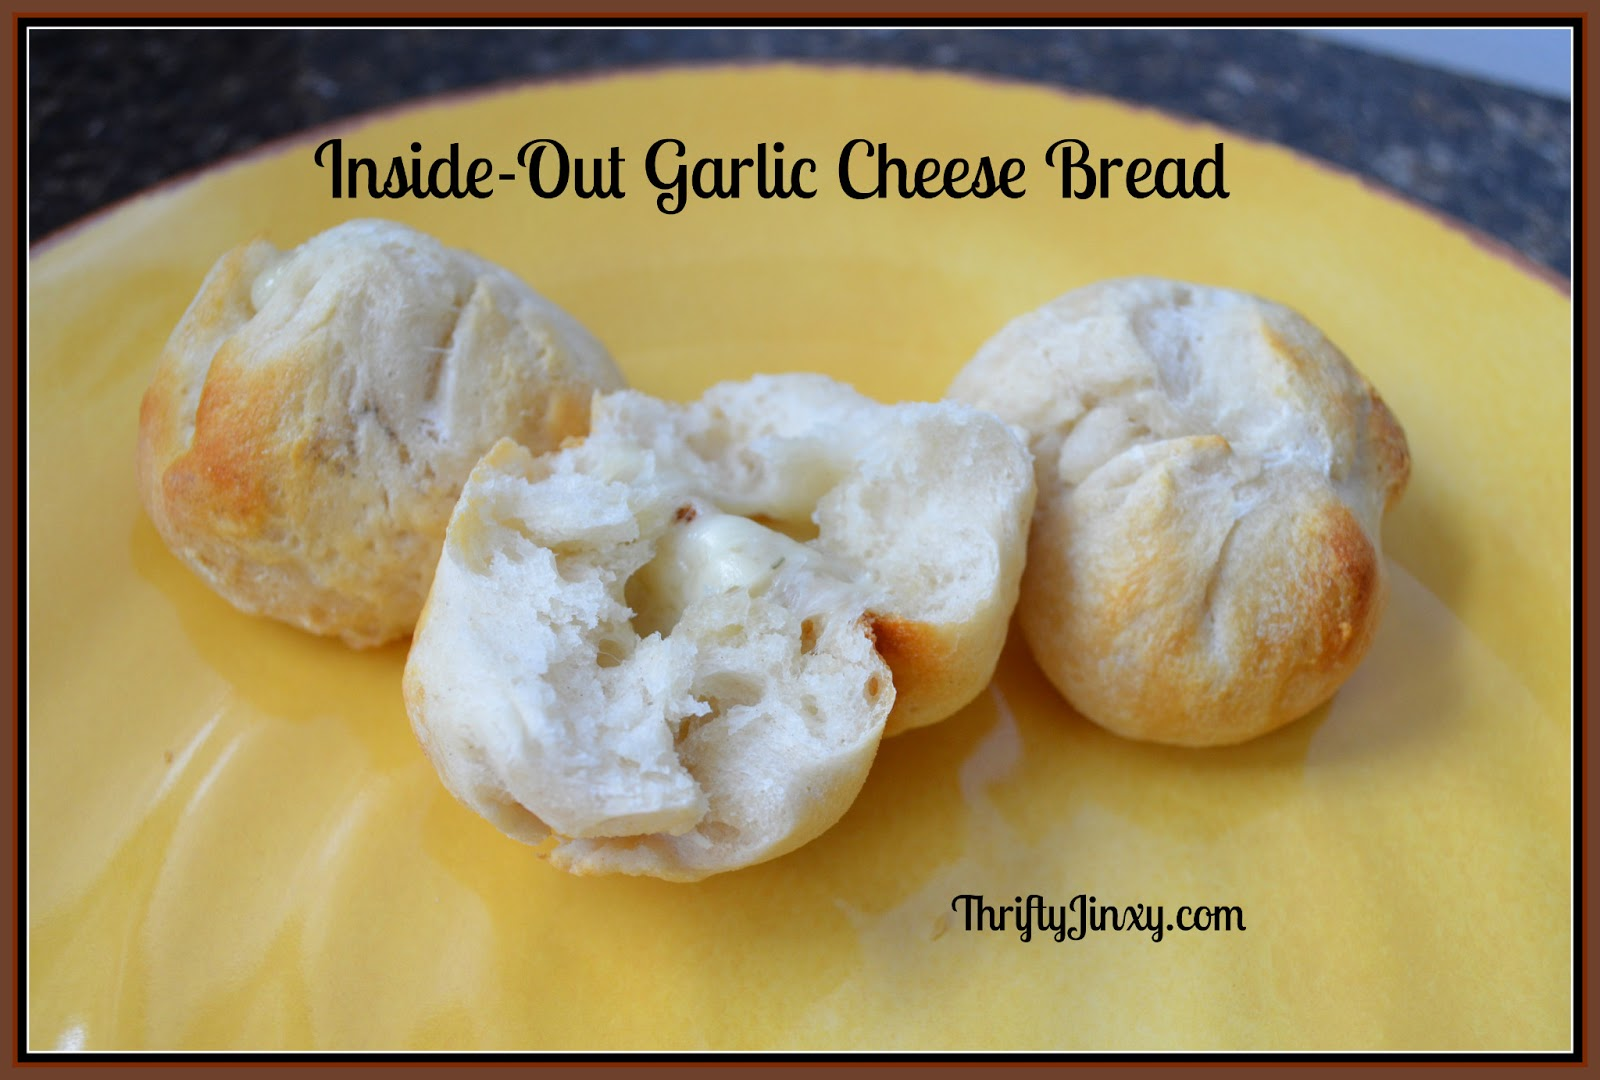 Inside-Out Garlic Cheese Bread Bites Recipe - Thrifty Jinxy